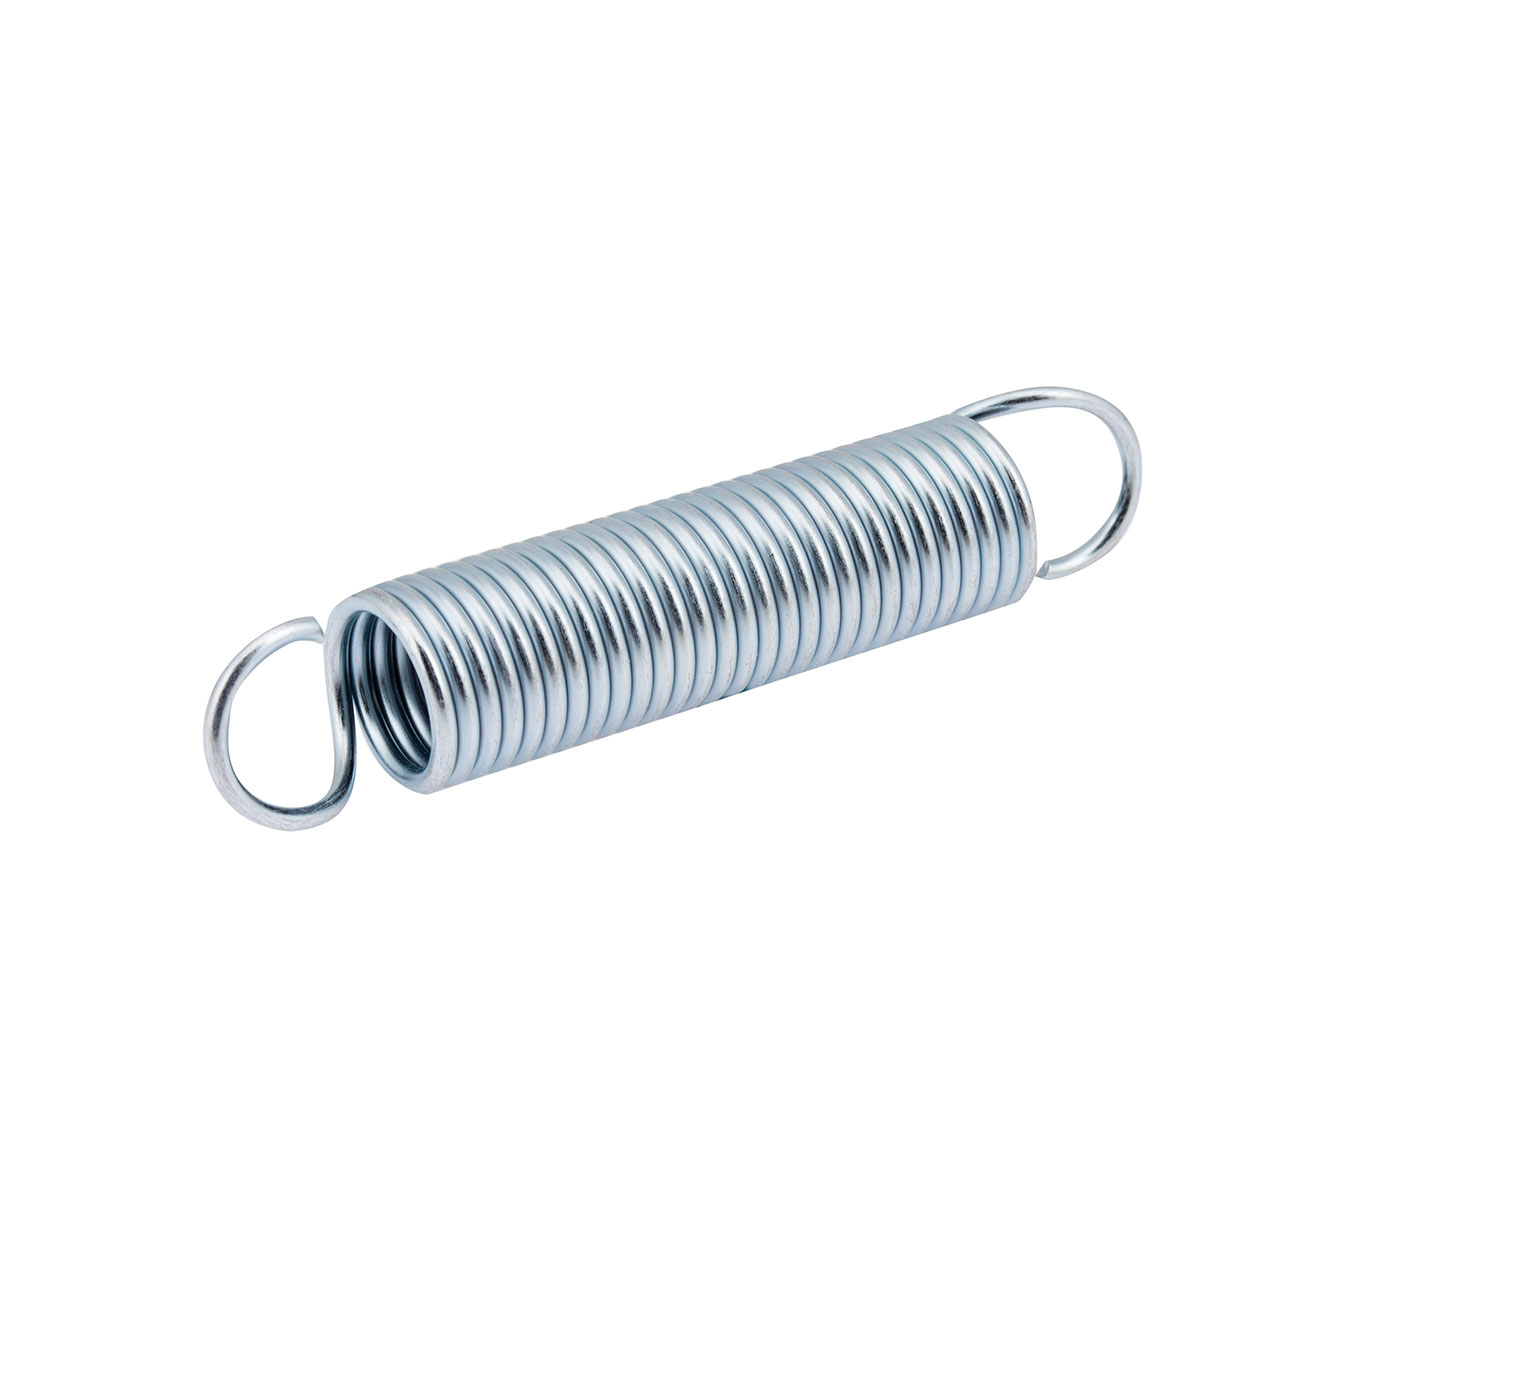 222236 Music Wire Extension Spring - 1 x 5 in alt 1